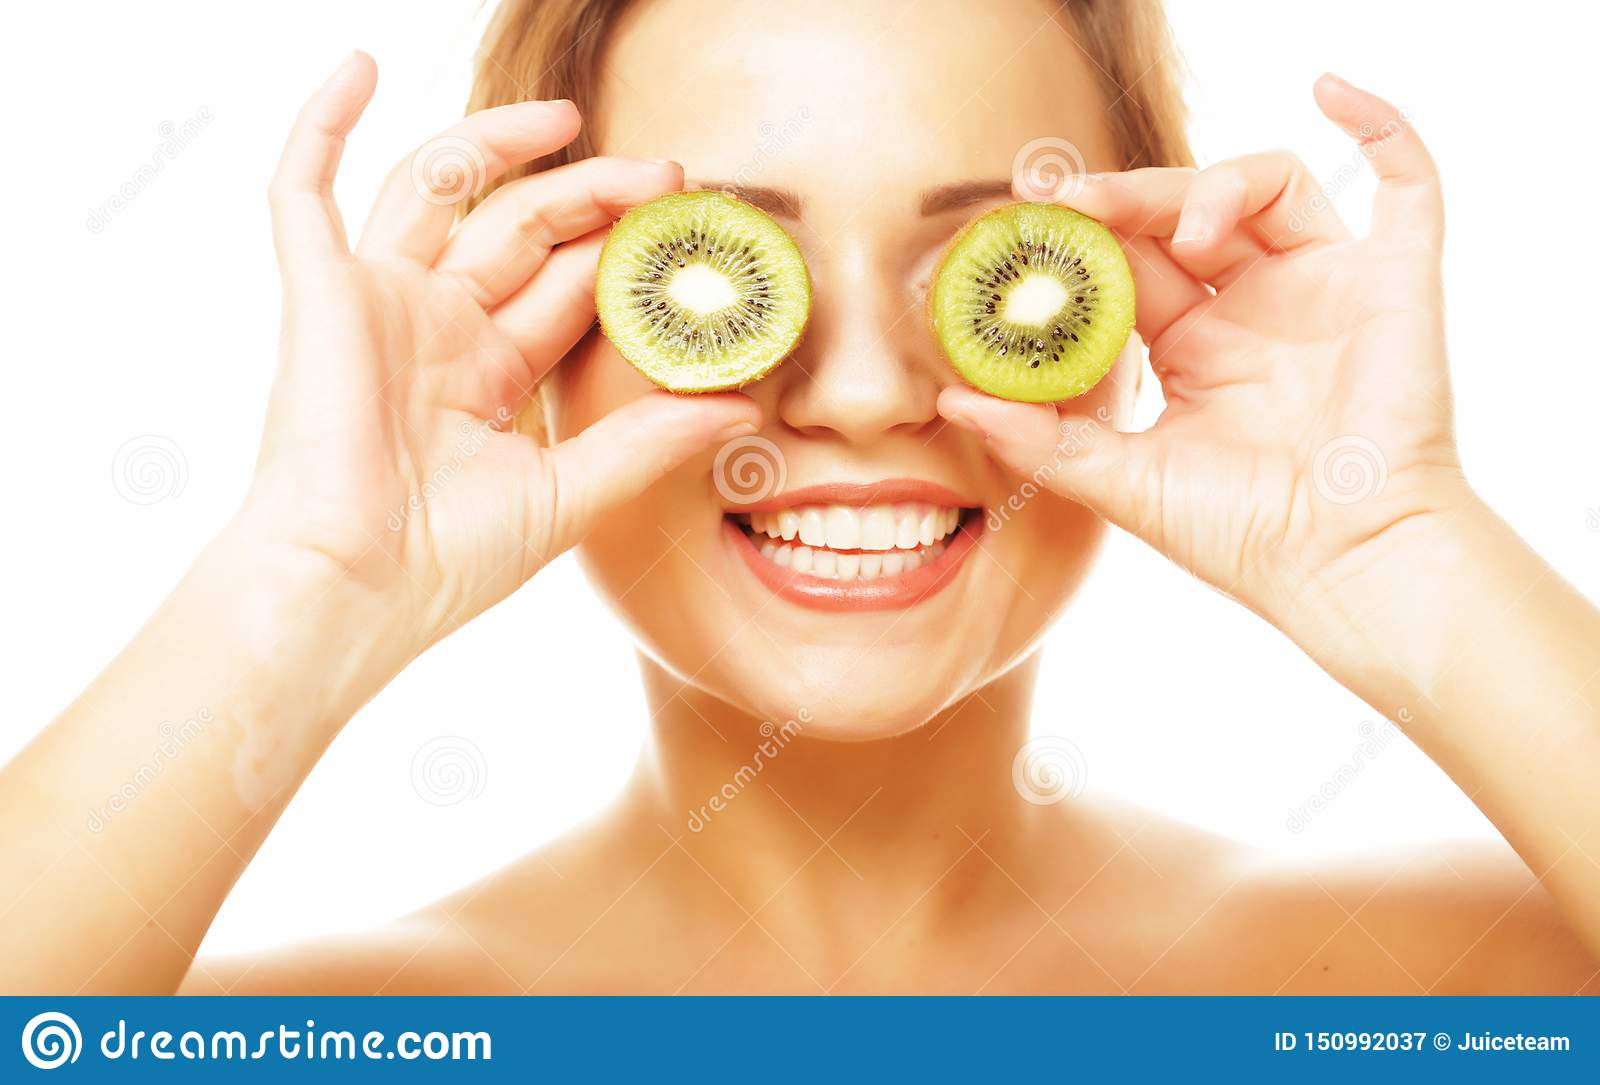 Healthy eating, food and diet concept - funny woman holding kiwi fruit for her eyes.